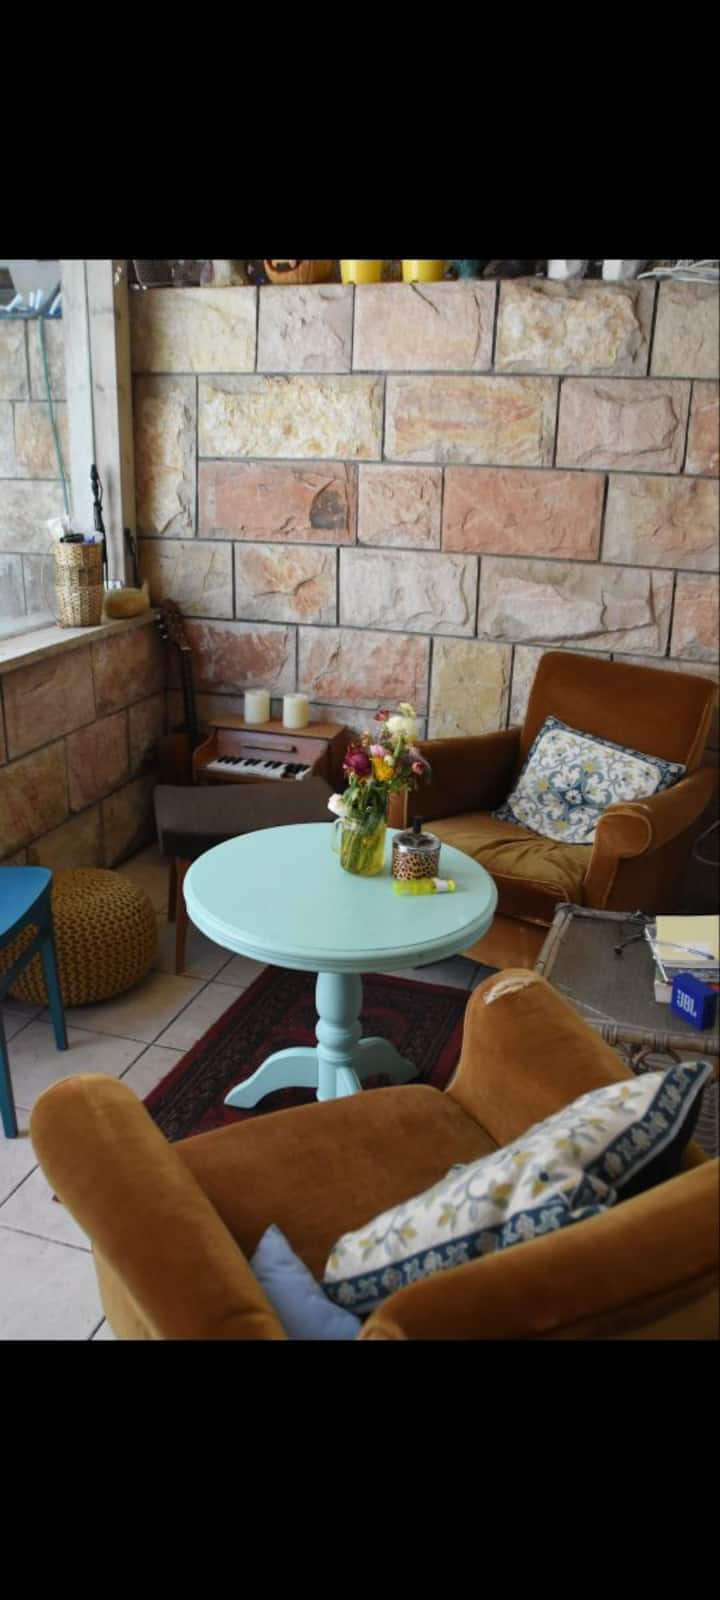 A magical house in the middle of Jaffa